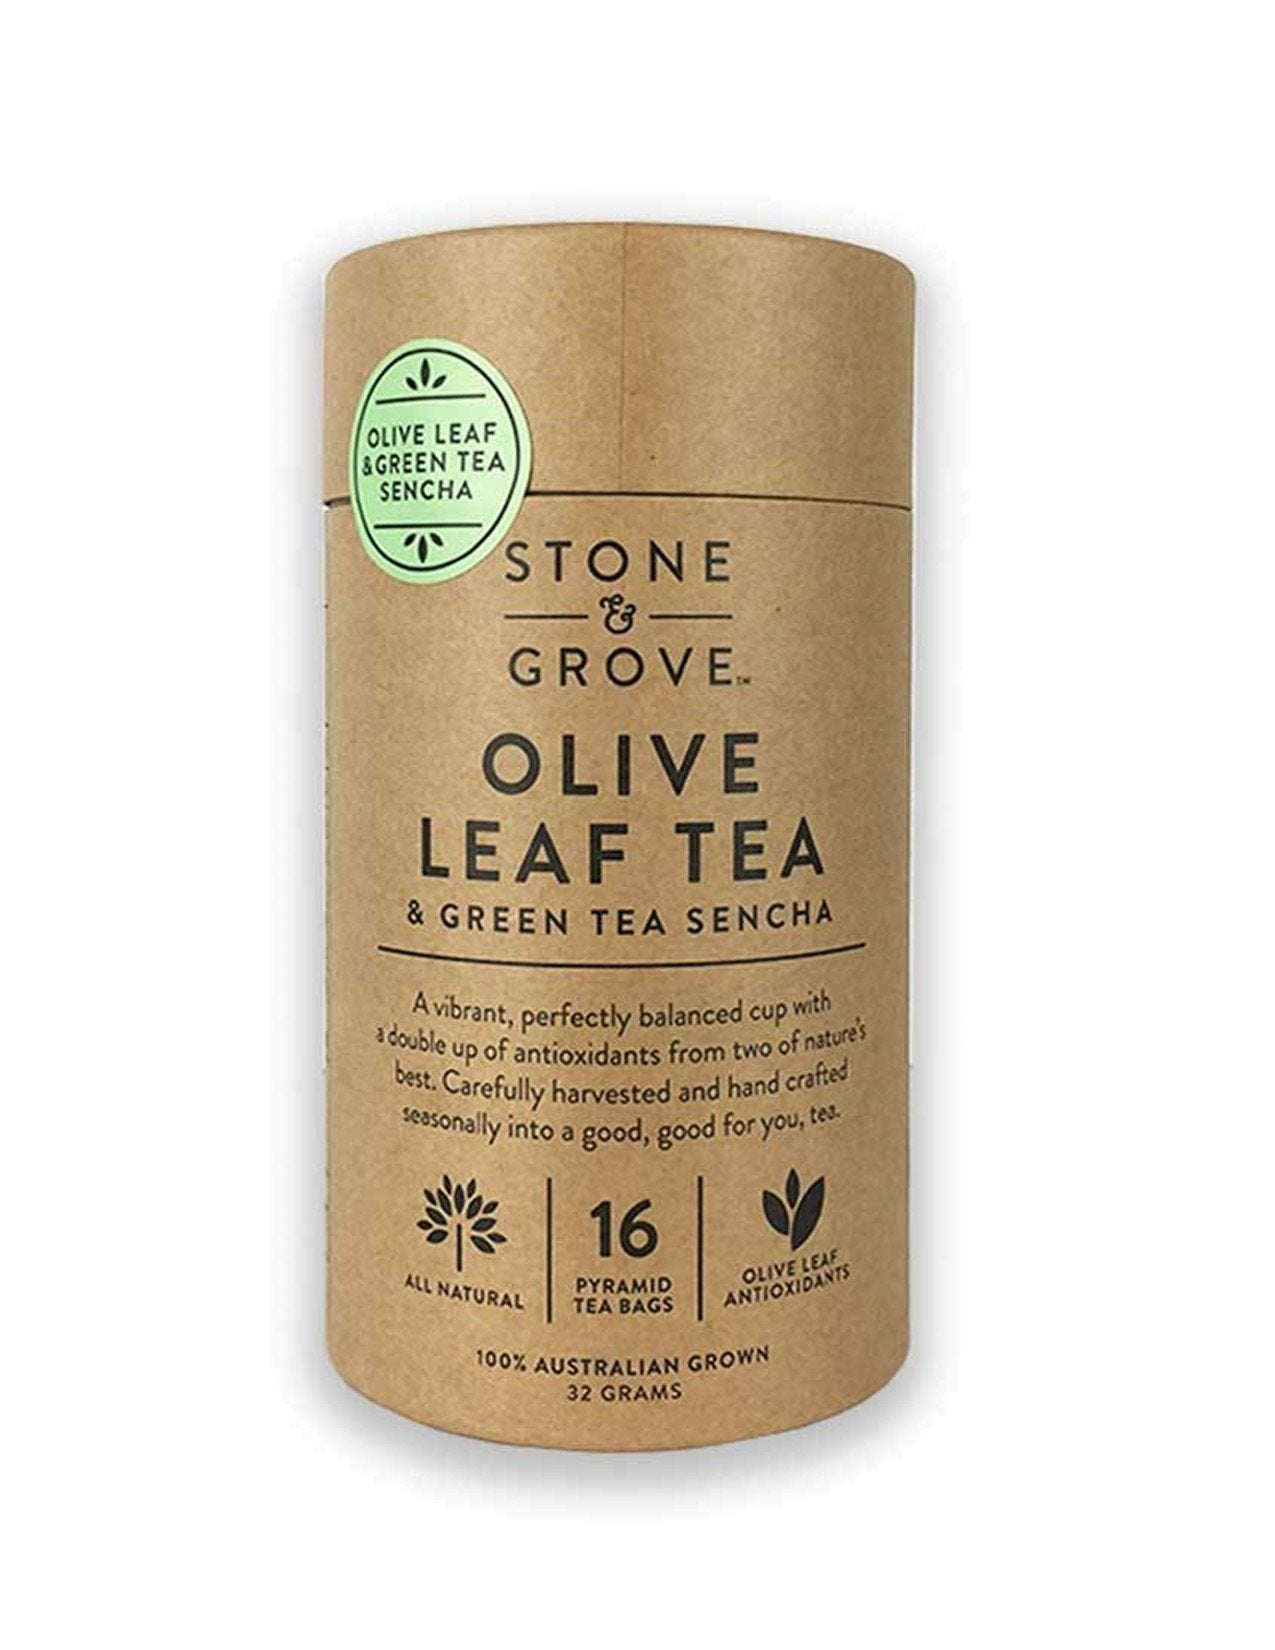 Stone and Grove Olive Leaf and Green Tea Sencha